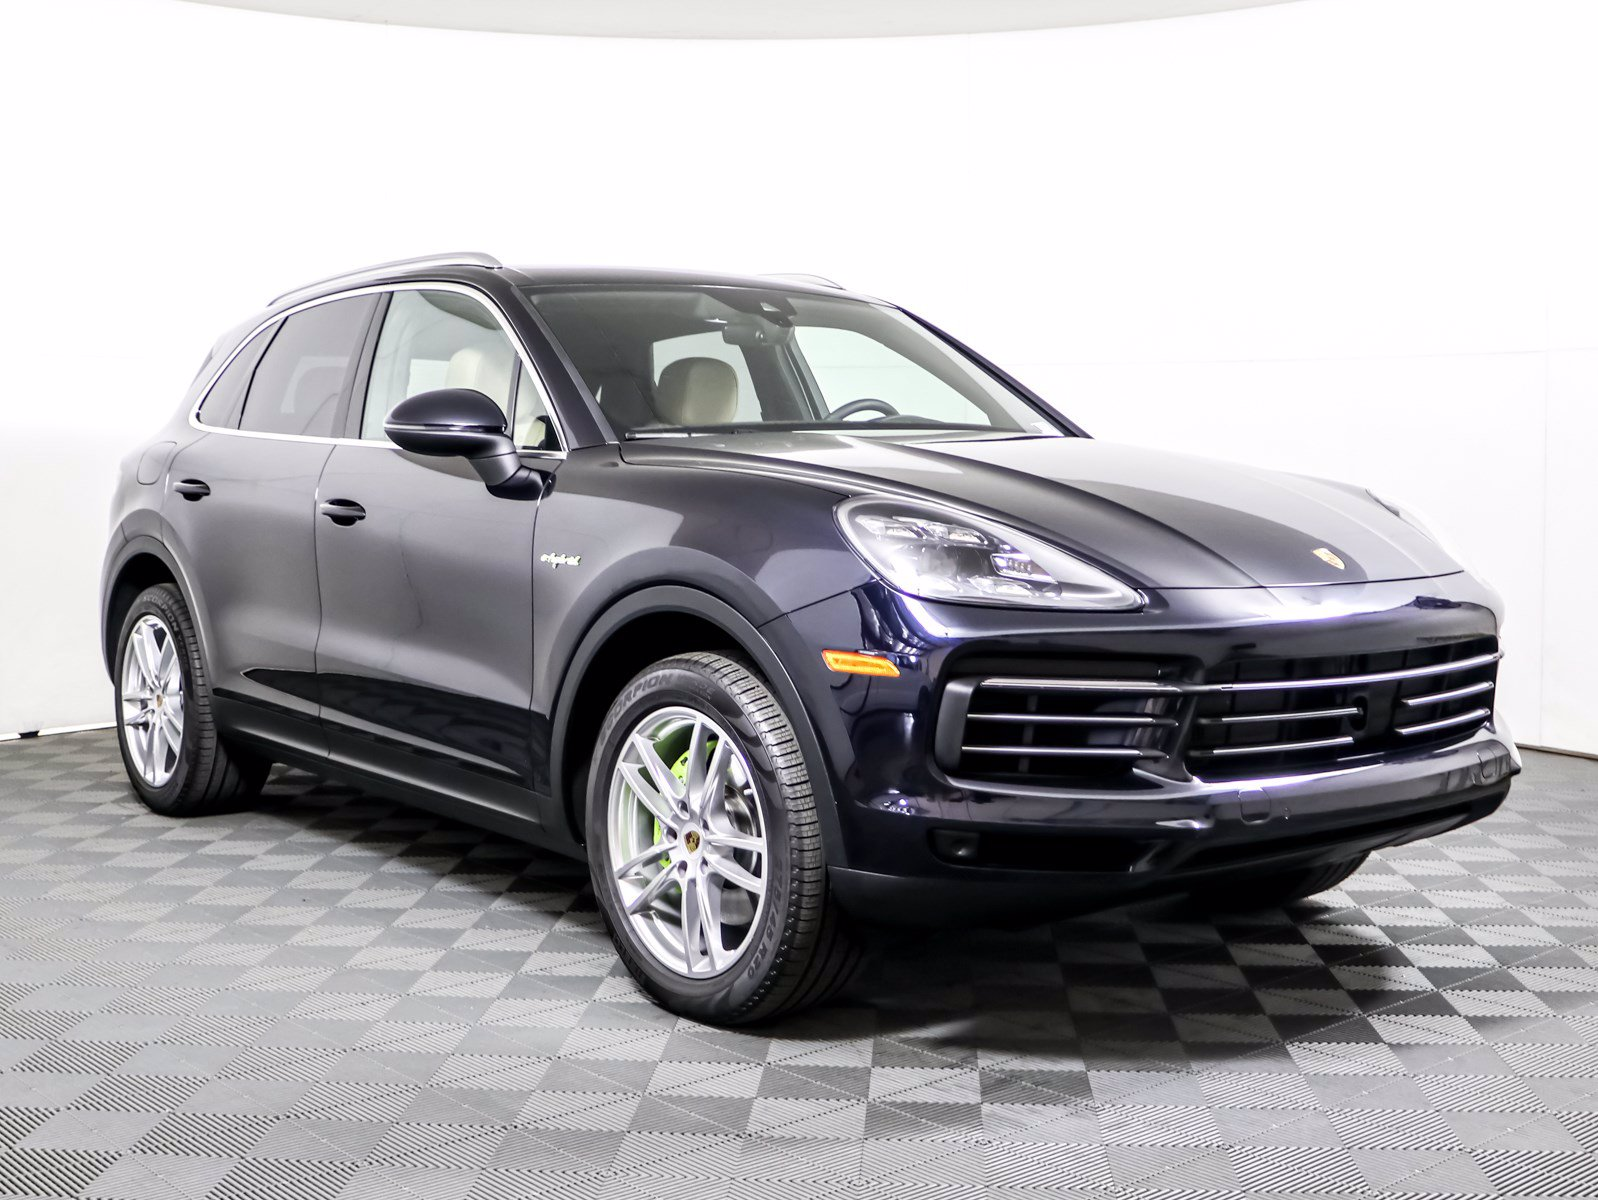 Certified Pre-Owned 2019 Porsche Cayenne E-Hybrid